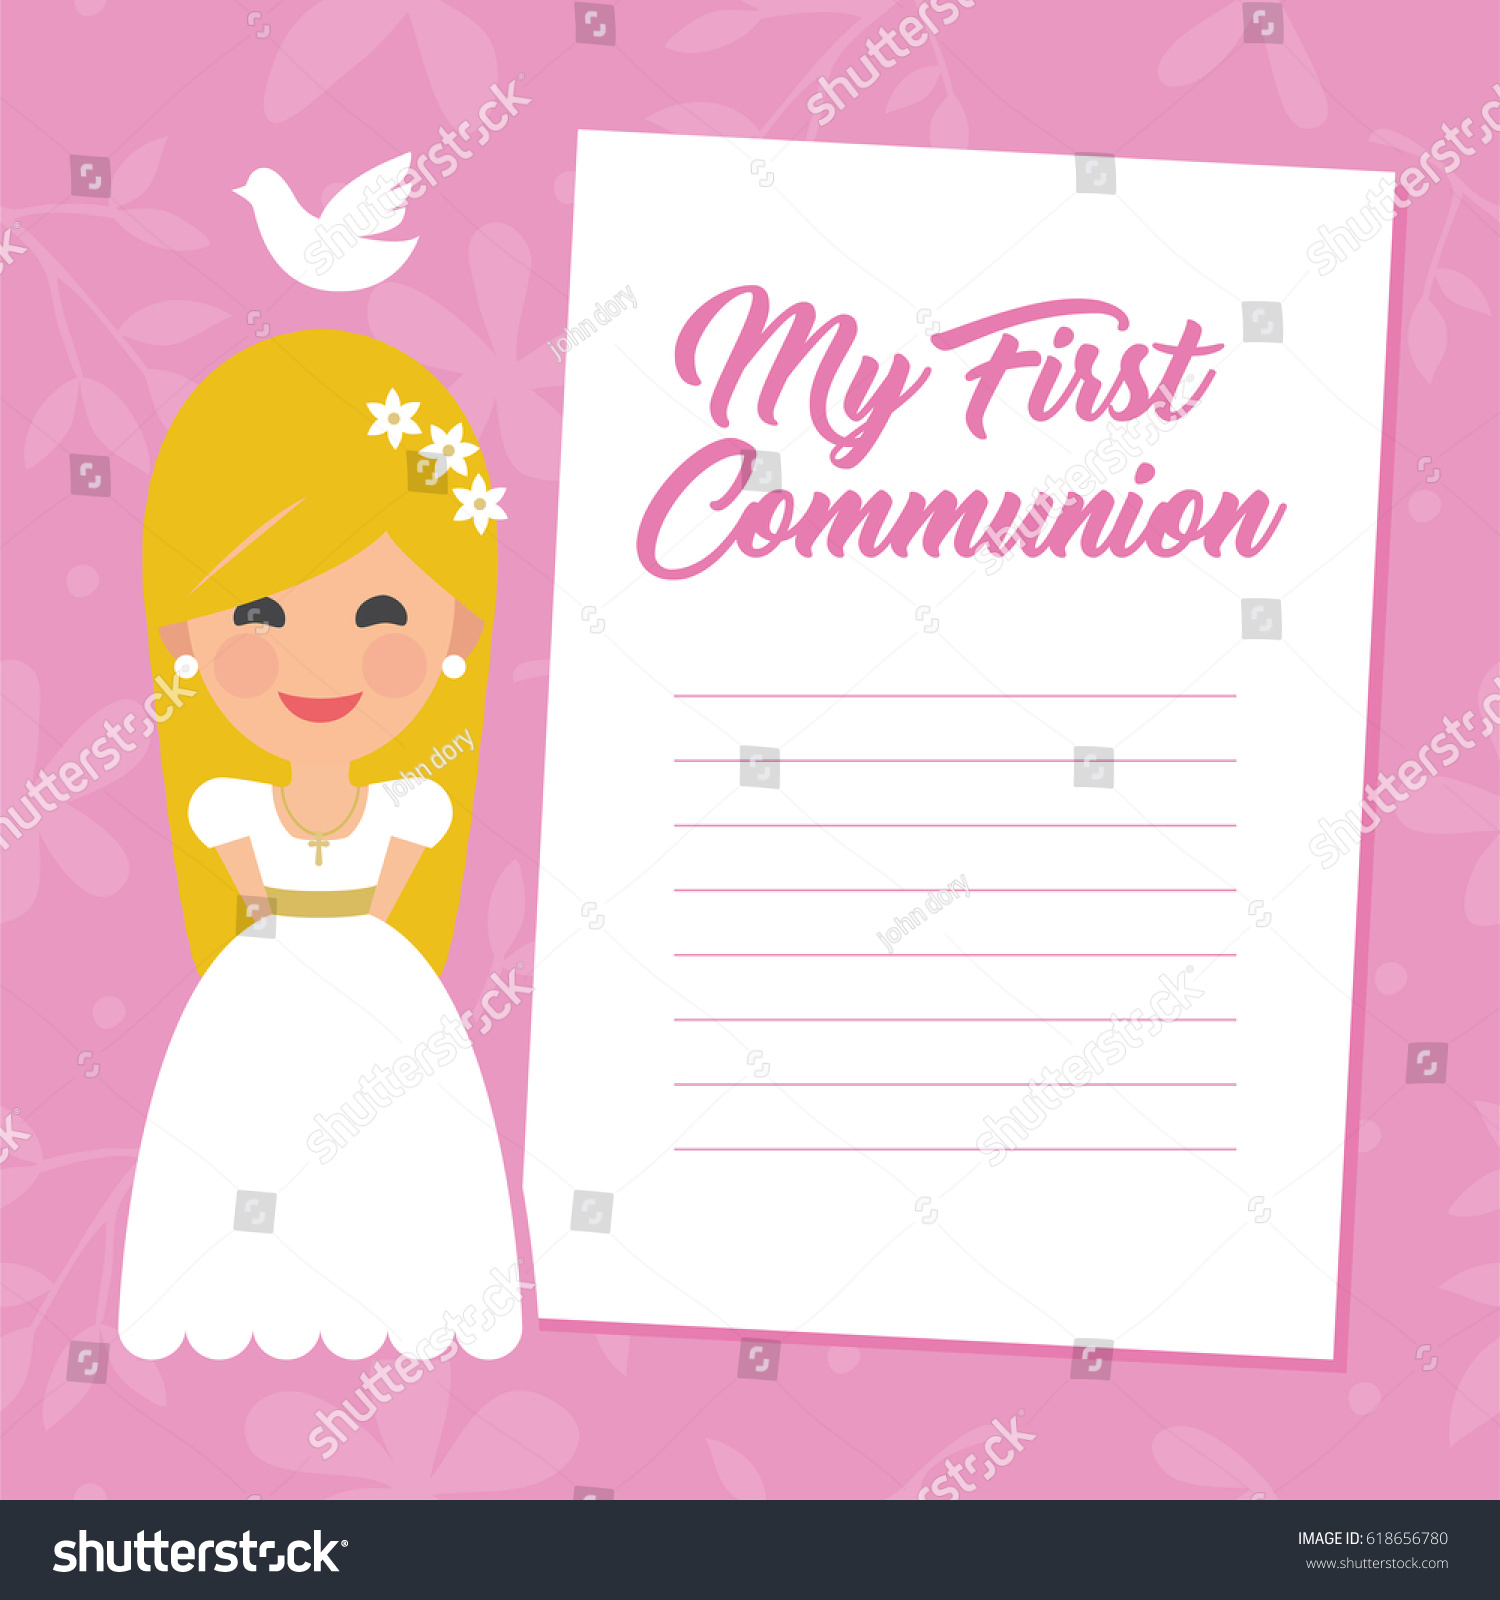 My first communion invitation message on stock vector 618656780 my first communion invitation with message on pink background vector kristyandbryce Choice Image